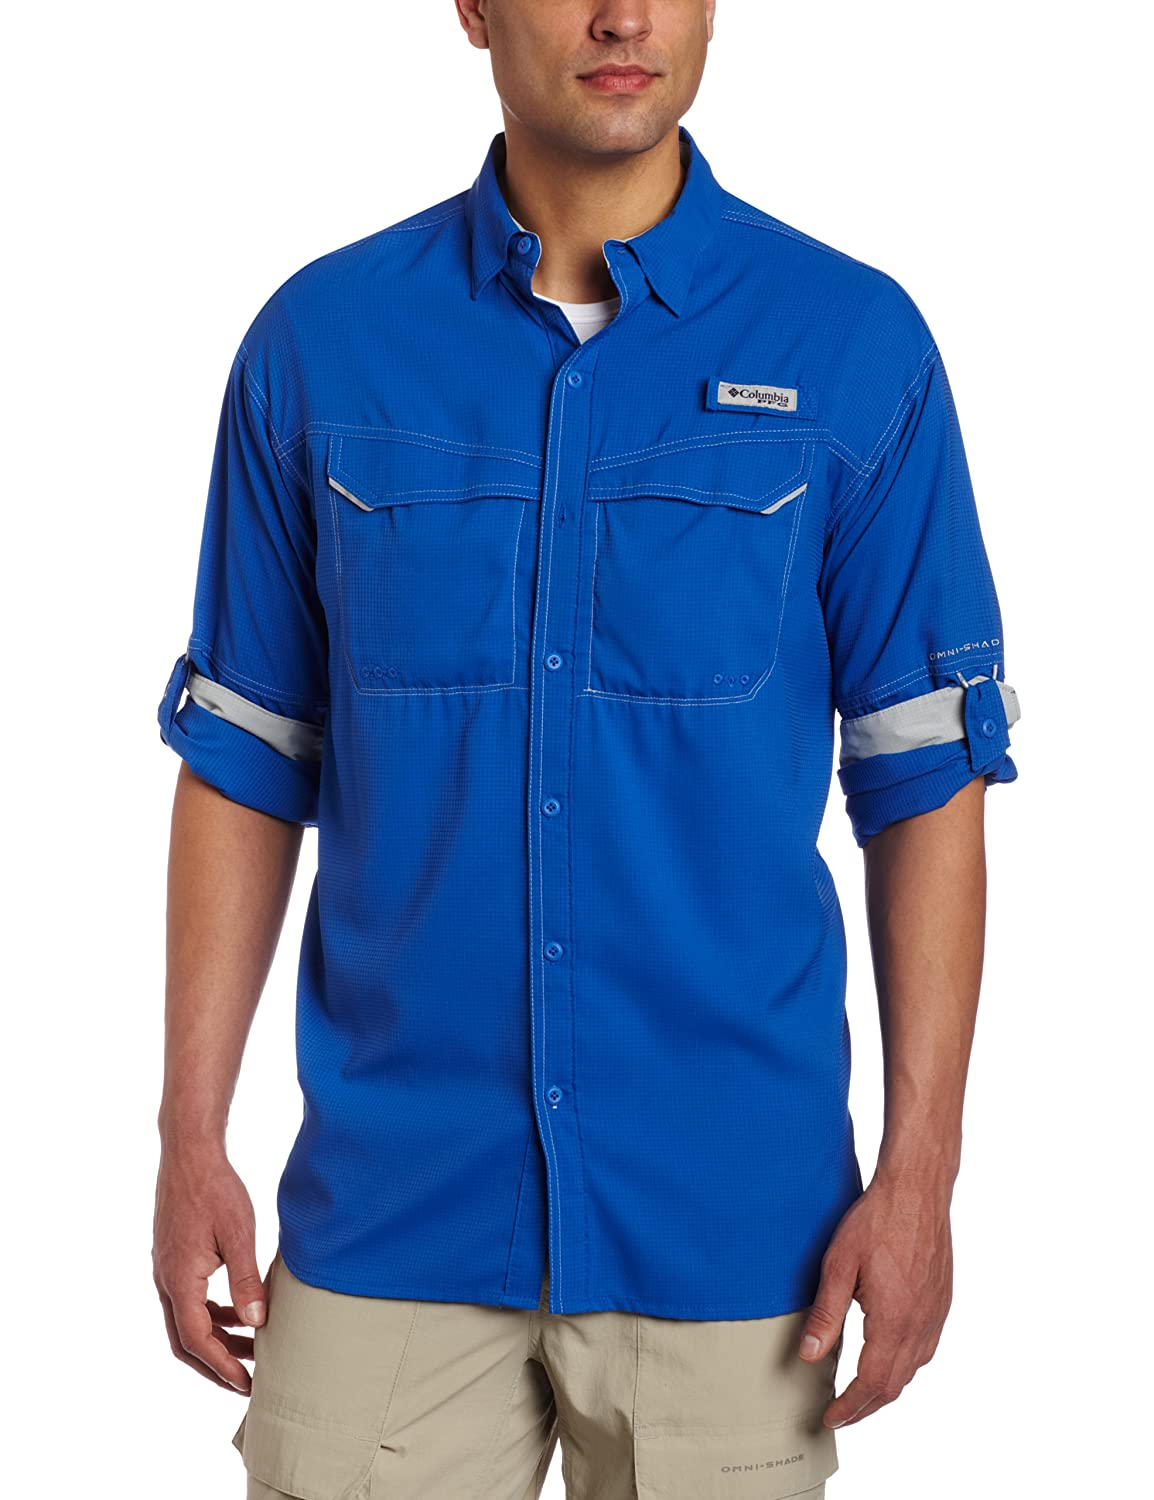 13616a6a48f Buy Columbia Men's Low Drag Offshore Long Sleeve Shirt, XX-Large, Vivid  Blue Online at Low Prices in India - Amazon.in